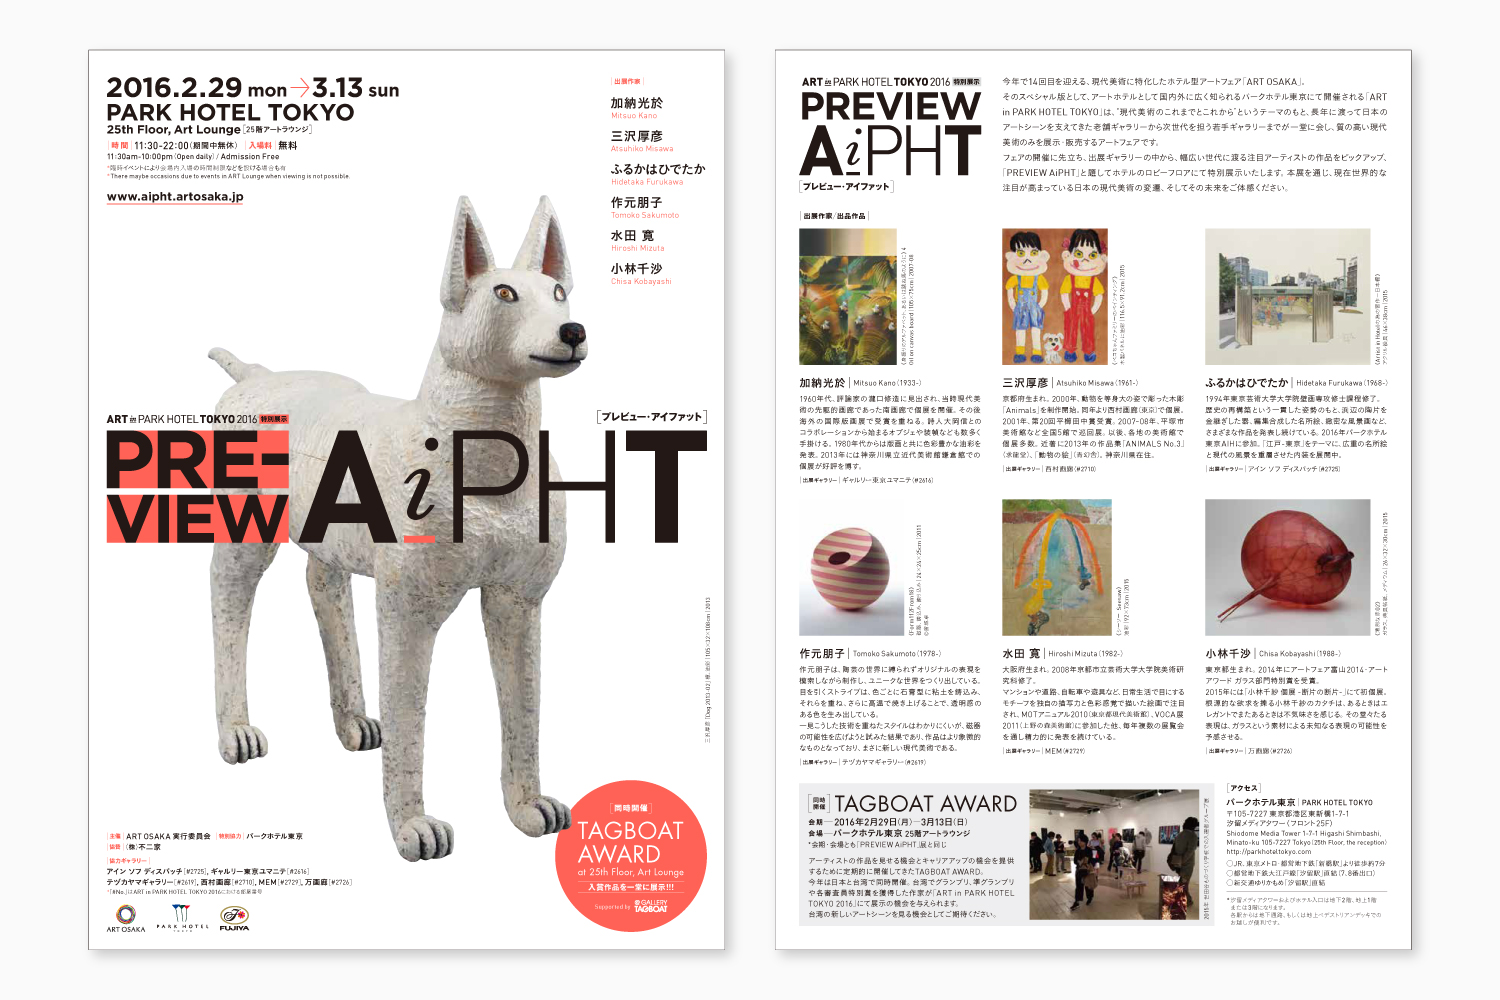 PREVIEW AiPHT 2016